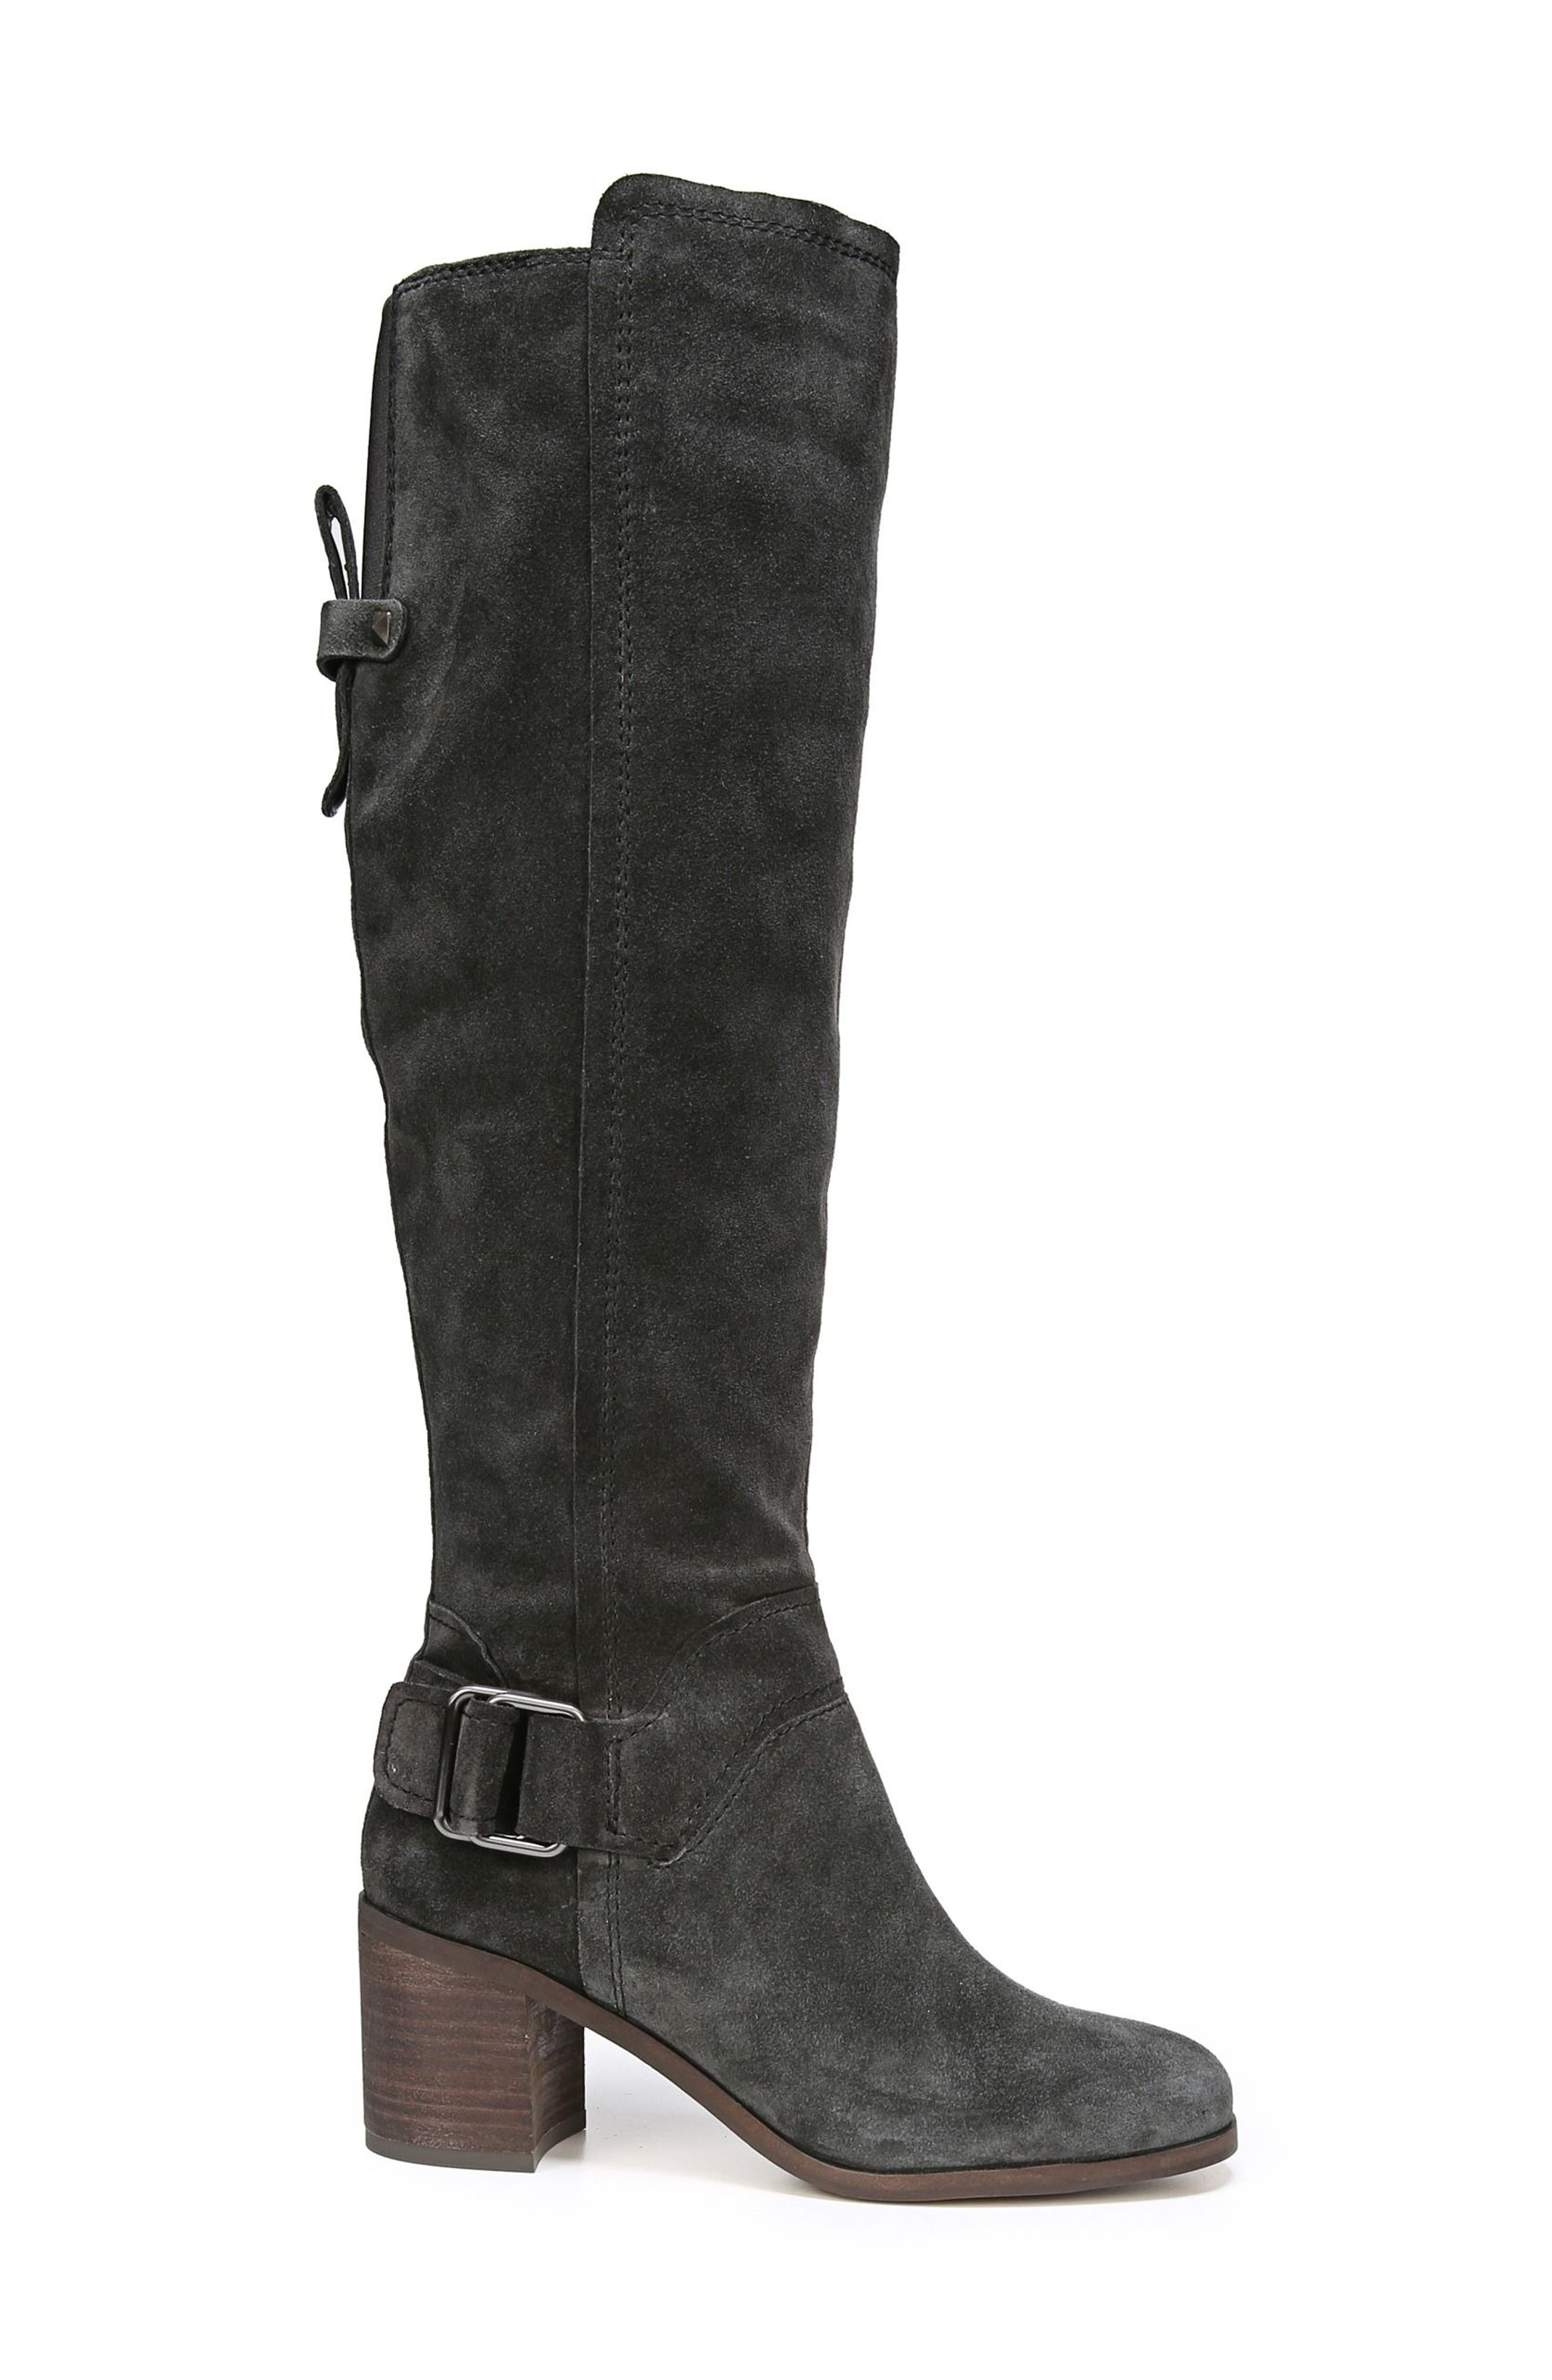 Mystic Knee High Boot,                             Alternate thumbnail 3, color,                             Coal Suede